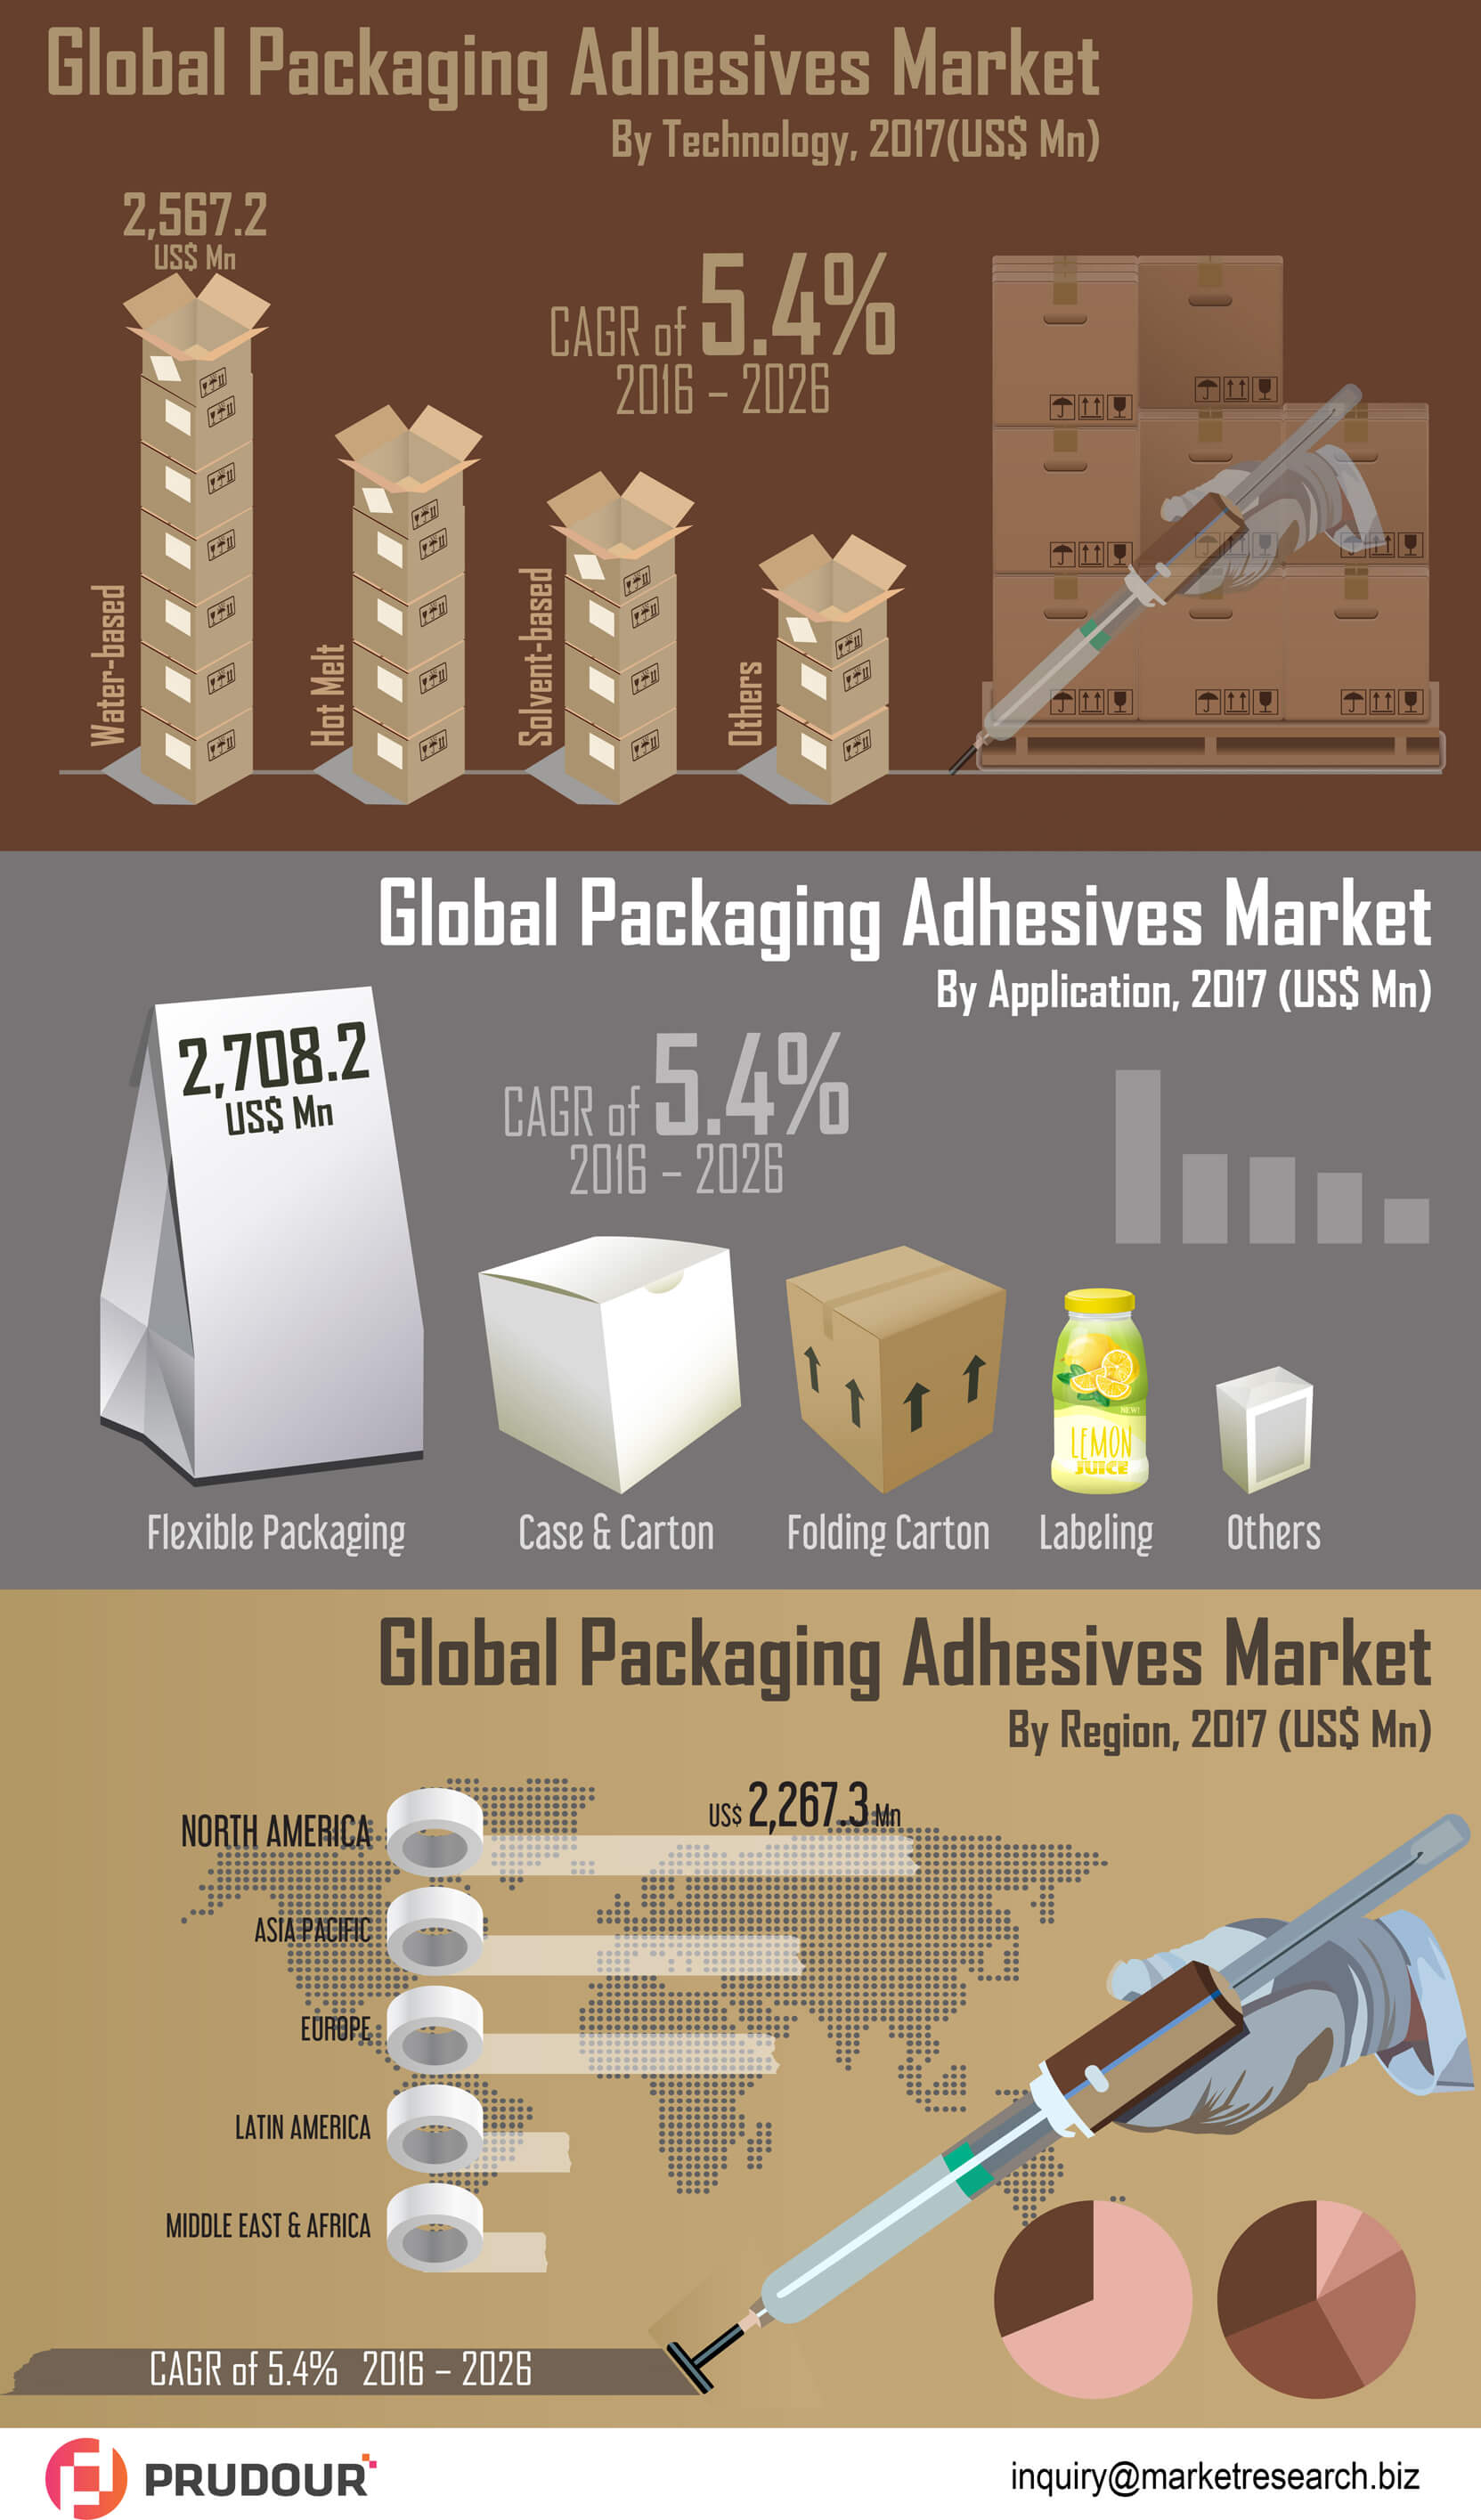 Global-Packaging-Adhesives-Market-infographic-plaza